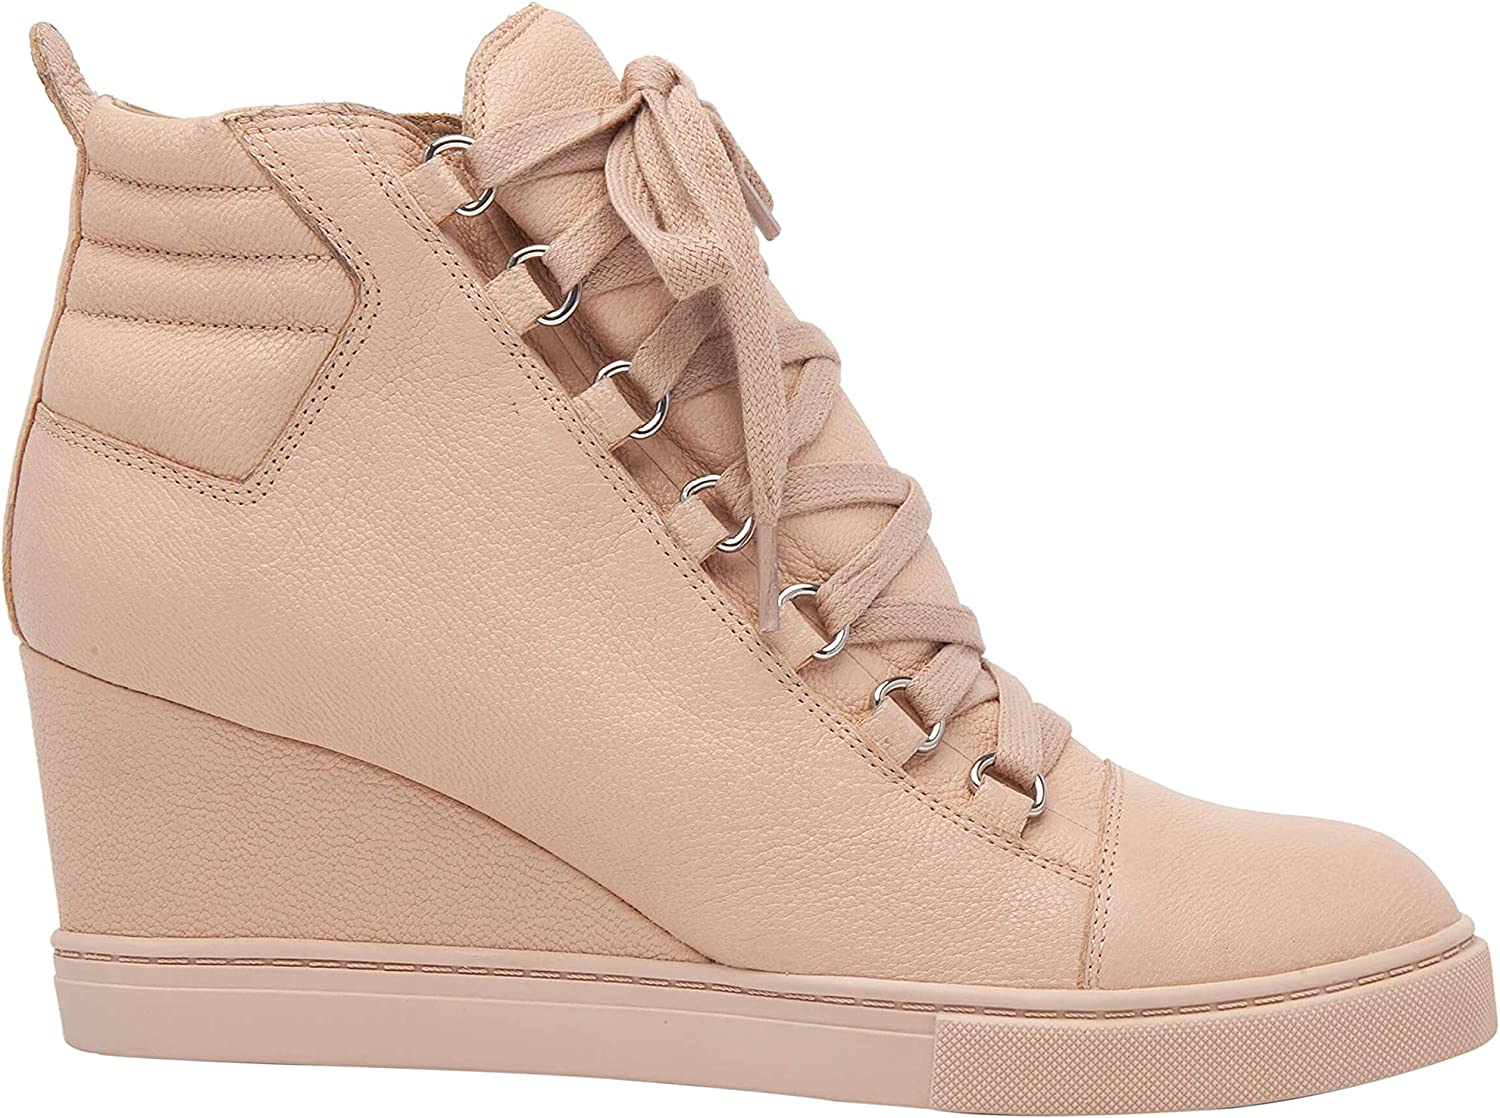 Linea Paolo - Fenton - Mid Height Leather or Suede Lace Up Sport Inspired Sneaker Wedge Blush Pebbled Leather